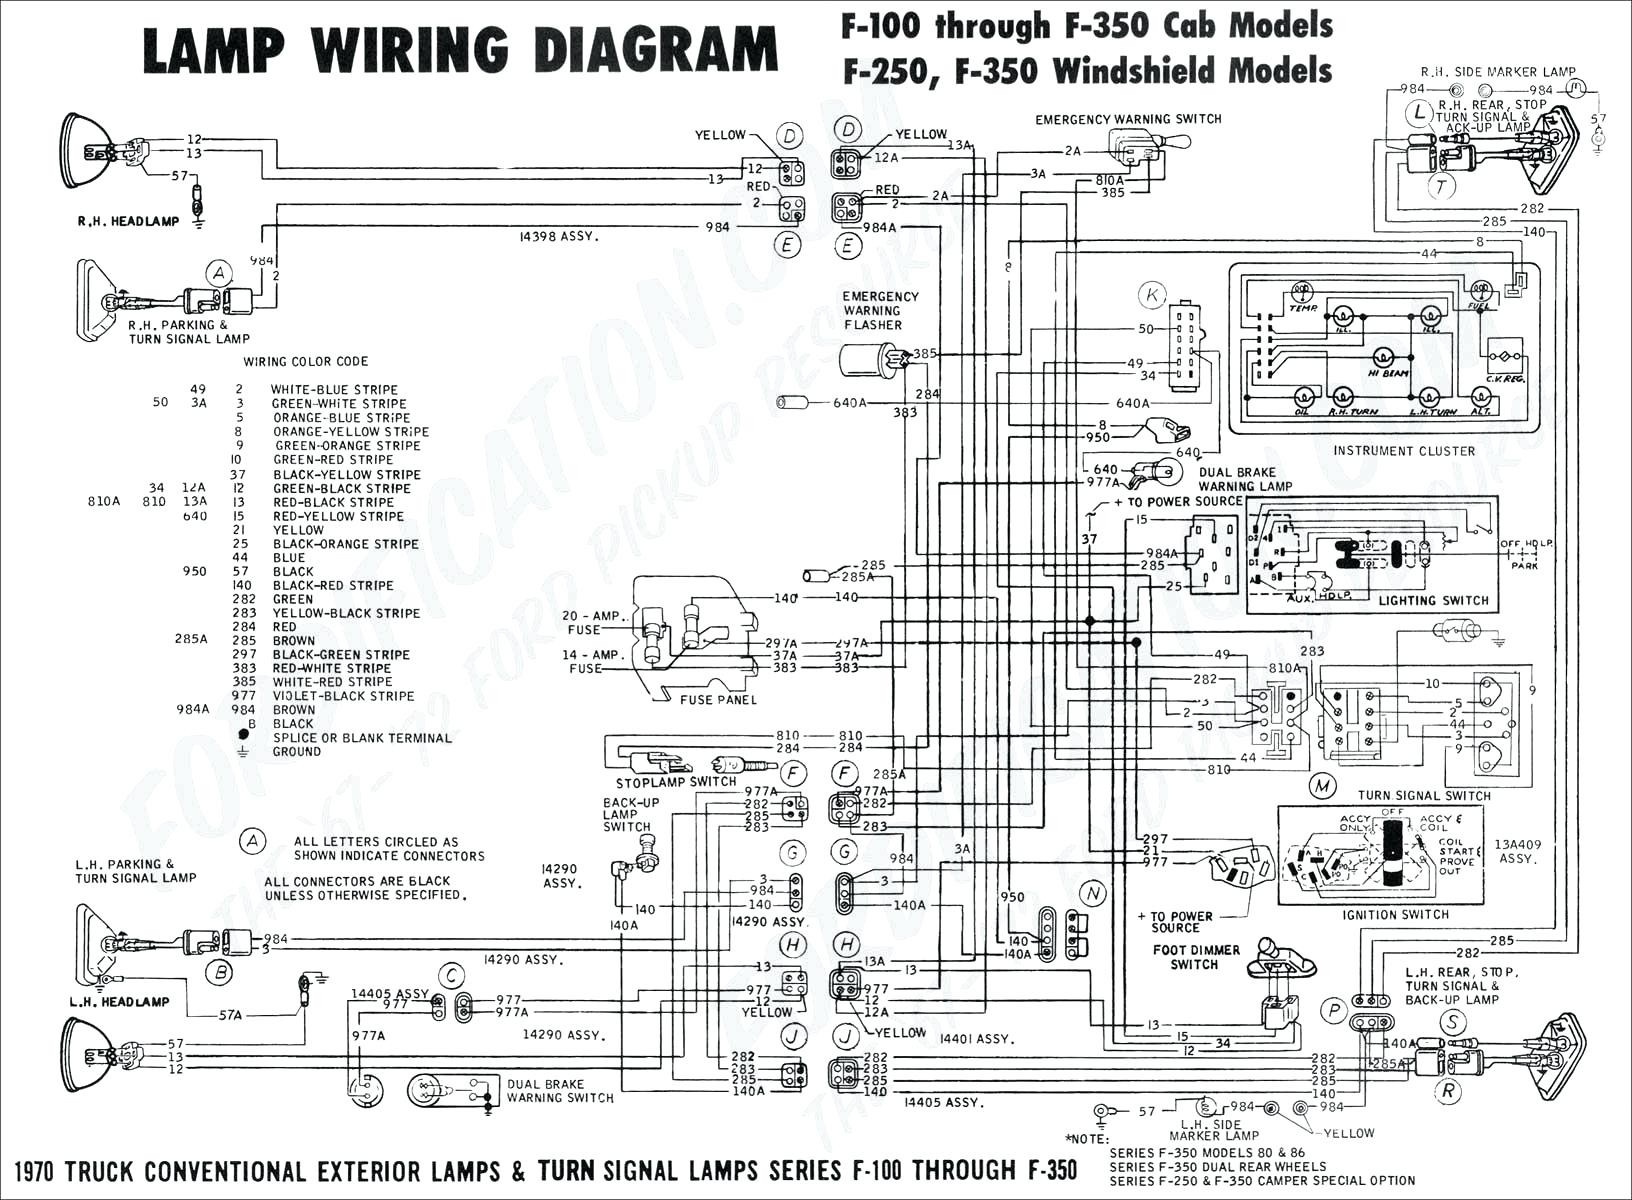 03 Escape Fuse Box | Wiring Diagram on 03 escape headlight, 03 escape dome light, 03 escape battery, 03 escape relay diagram, 03 escape engine,